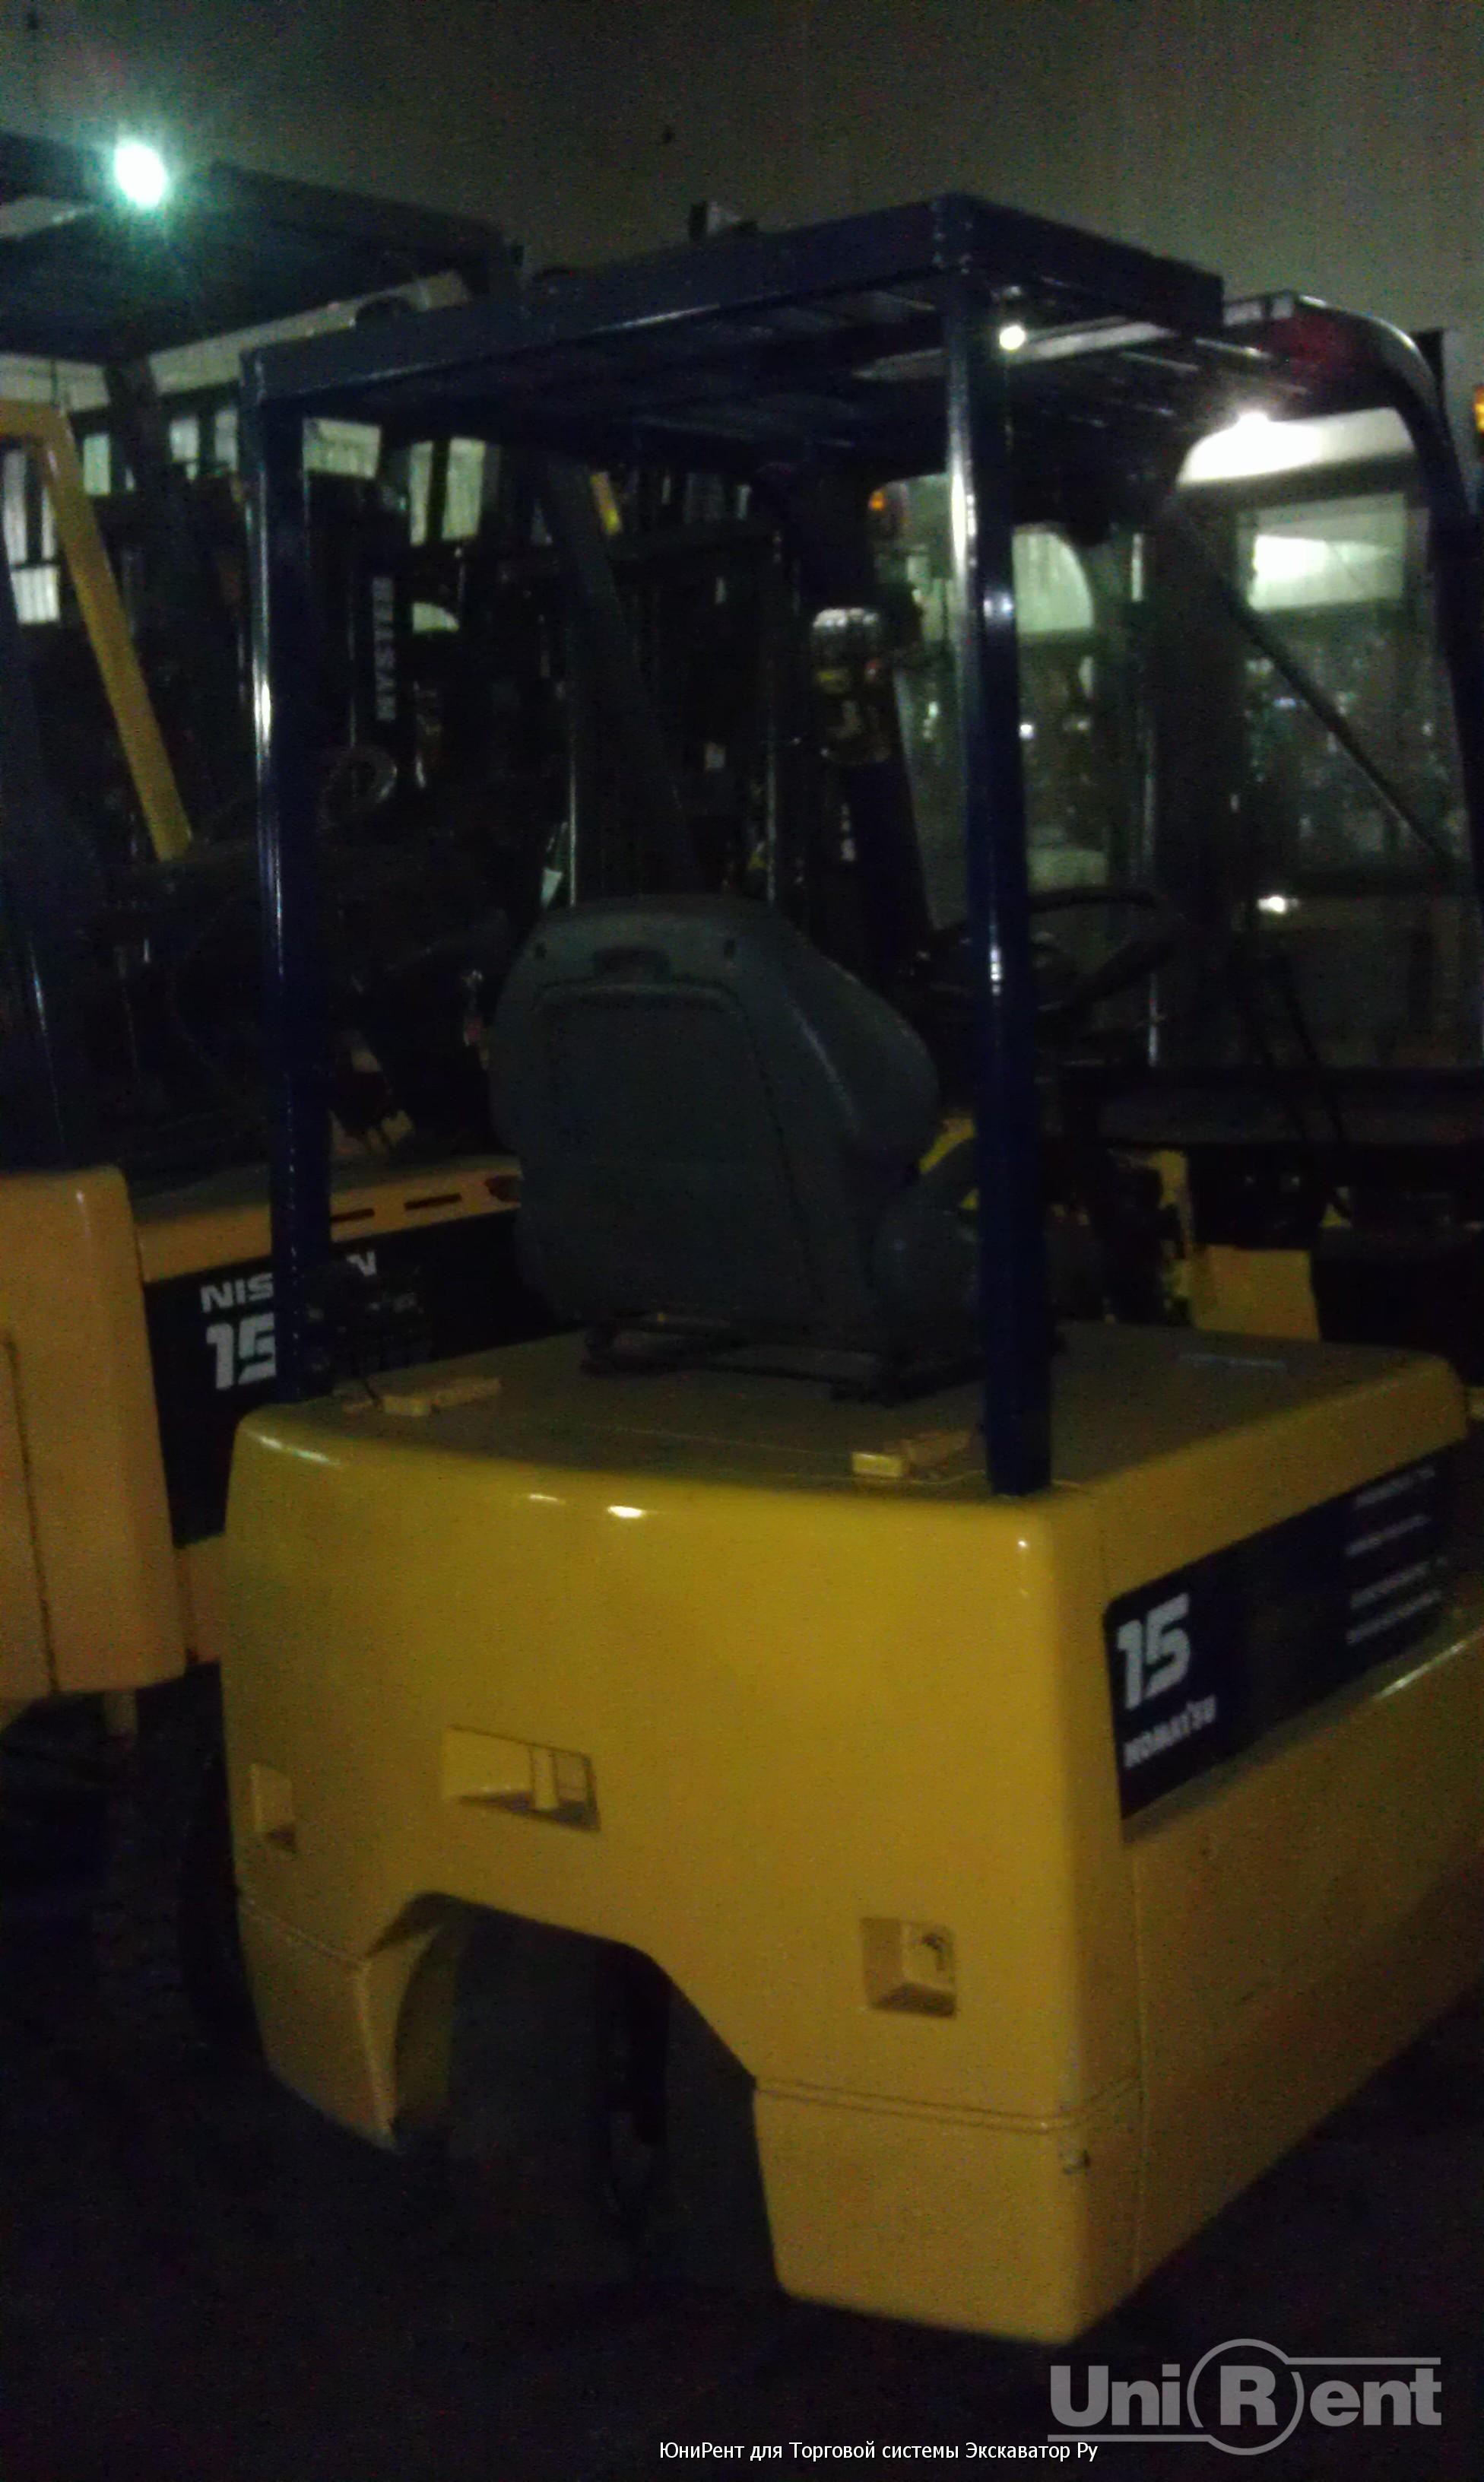 Komatsu Fb15m 2 Operator Manual Free Download Wiring Schematics Fb13m Automotive Library Forklift Parts Catalogue 2011 Introducing Komatsus Tier Final Fh Are Reference Only Not Be Used Operate Any